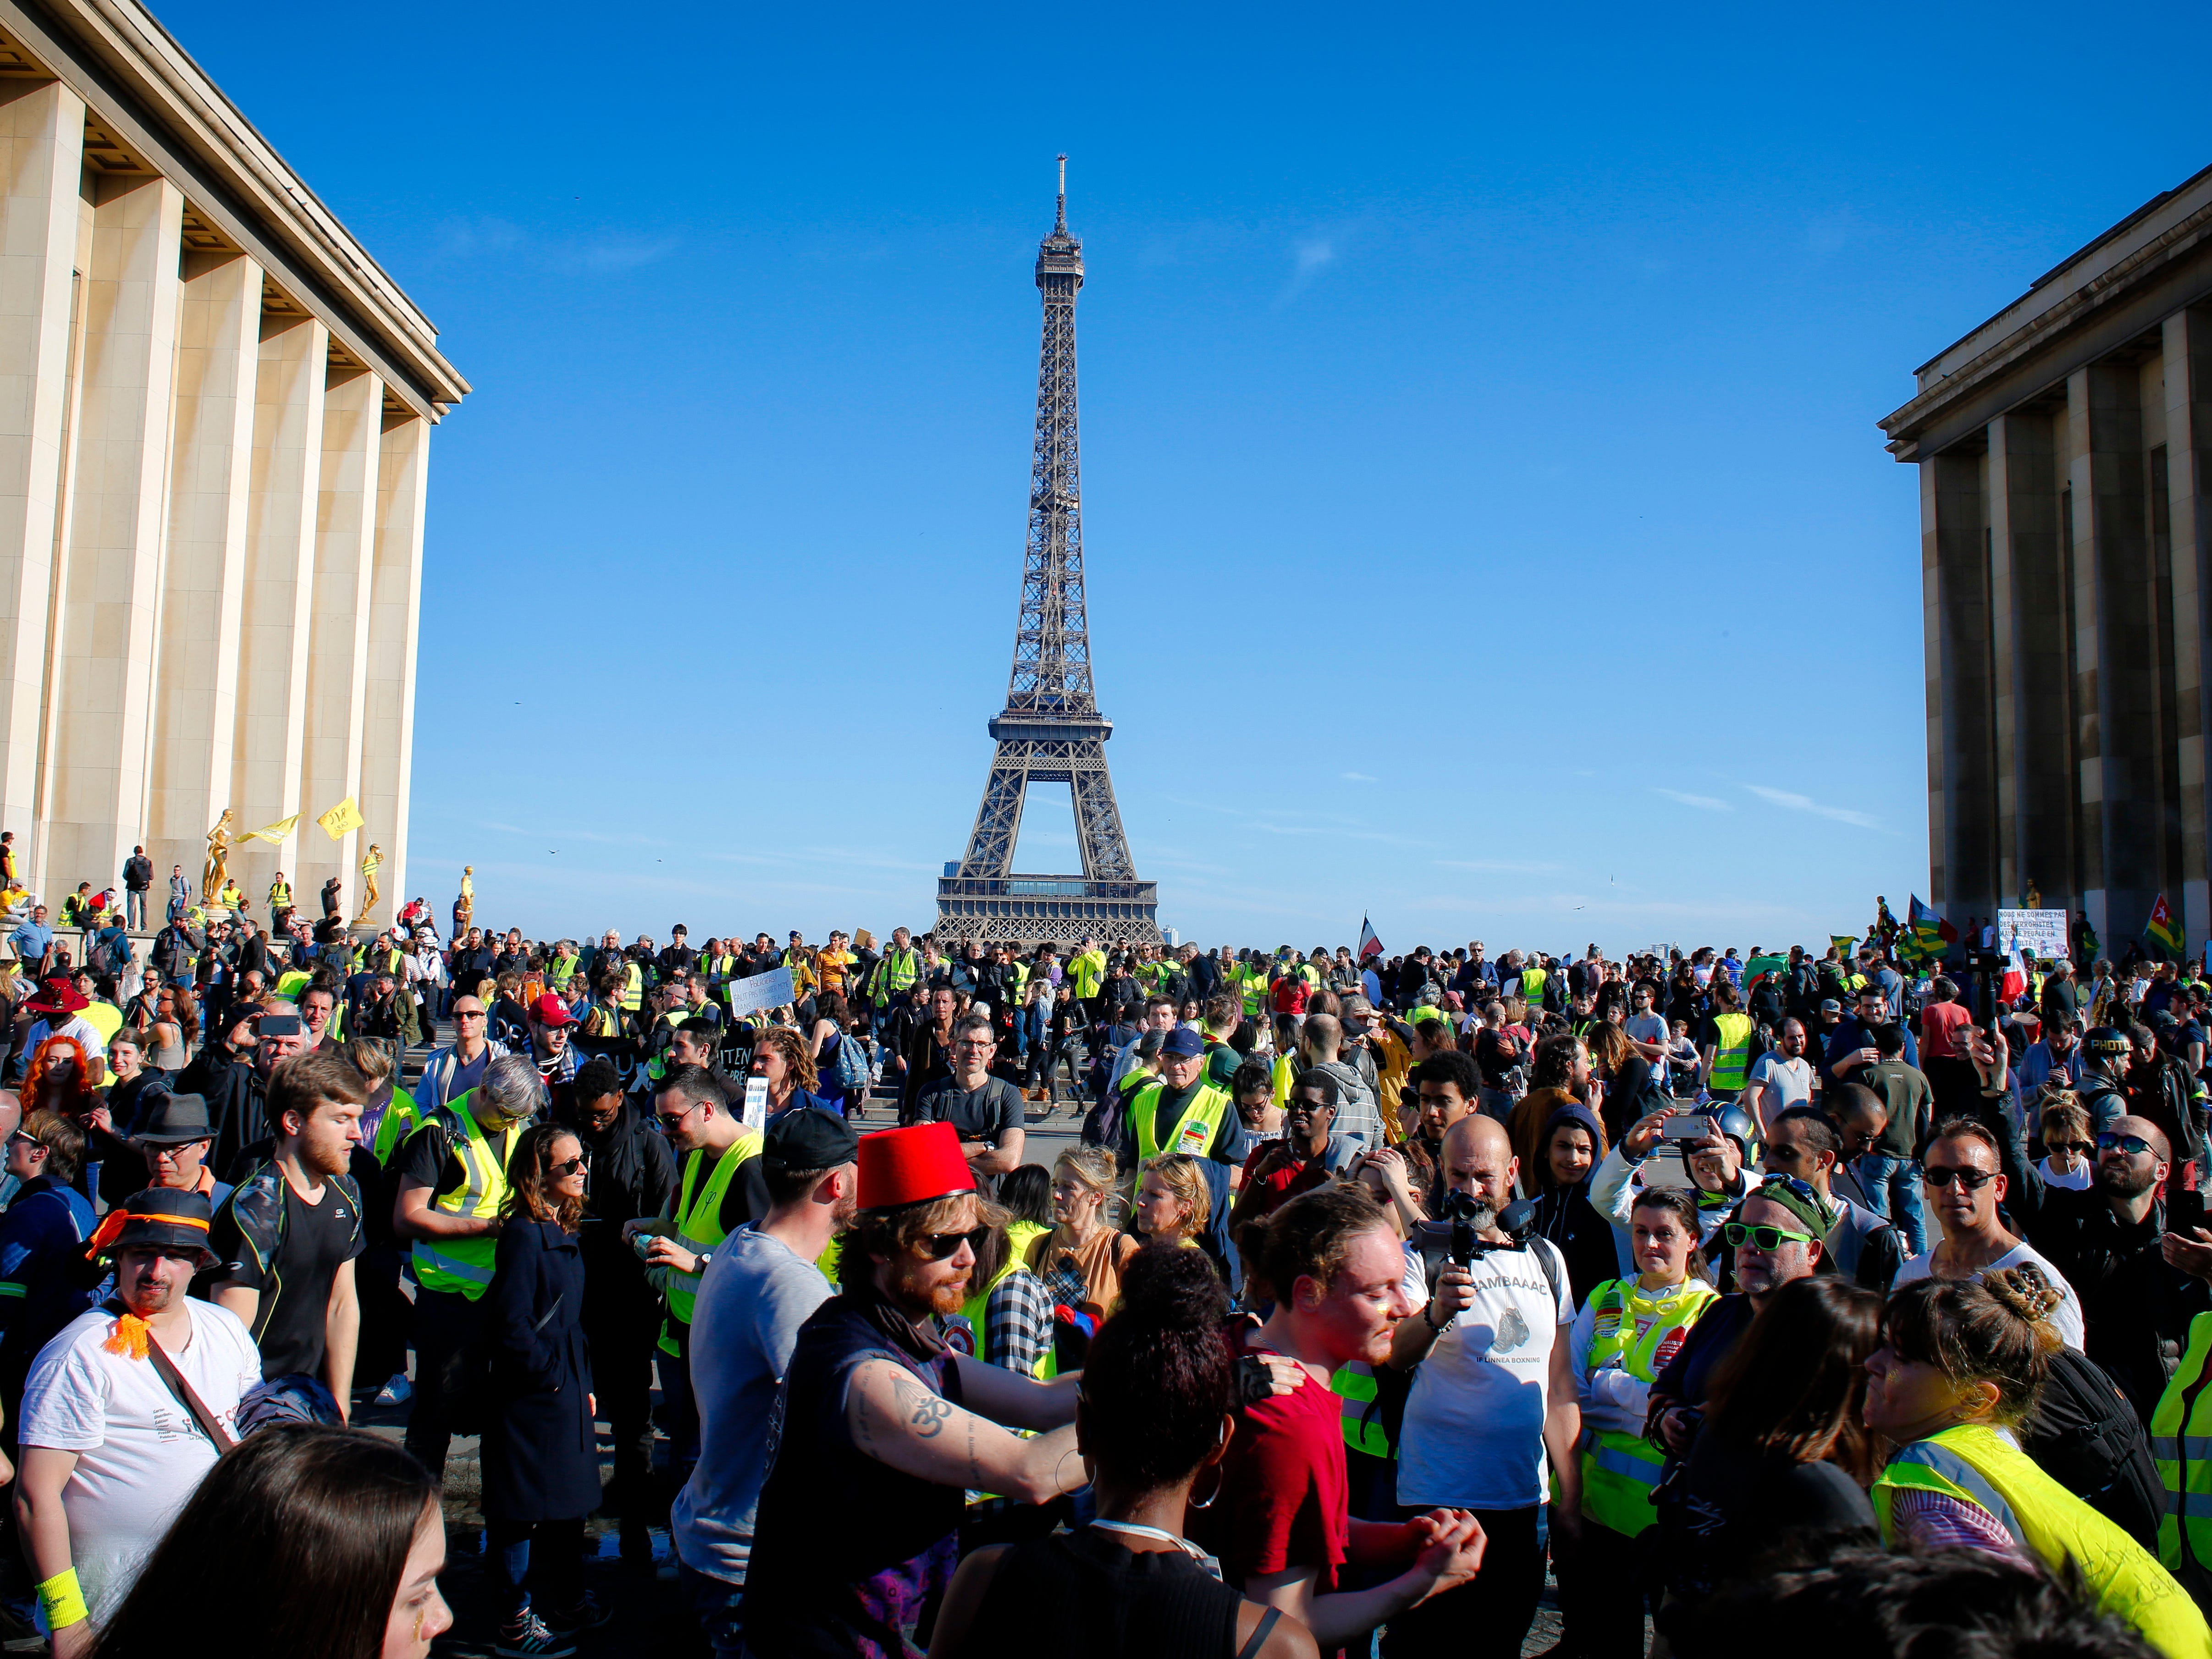 French yellow vest protesters, backdropped by the Eiffel Tower are rallying to support an older woman activist injured in a confrontation with police, Saturday, March 30, 2019 in Trocadero Square, in Paris. The demonstrators are undeterred by protest bans or repeated injuries in 20 weeks of demonstrations, marching again Saturday in Paris, Bordeaux and other cities to keep pressing President Emmanuel Macron to do more to help working classes, redesign French politics or step down altogether.